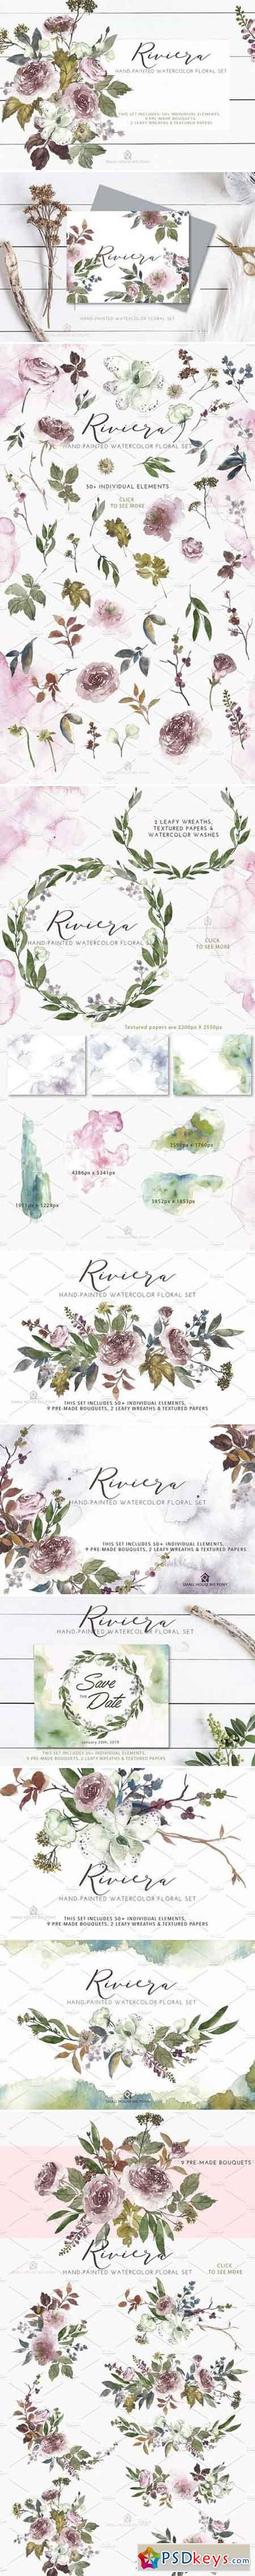 Riviera - Hand-painted Watercolor 2257837